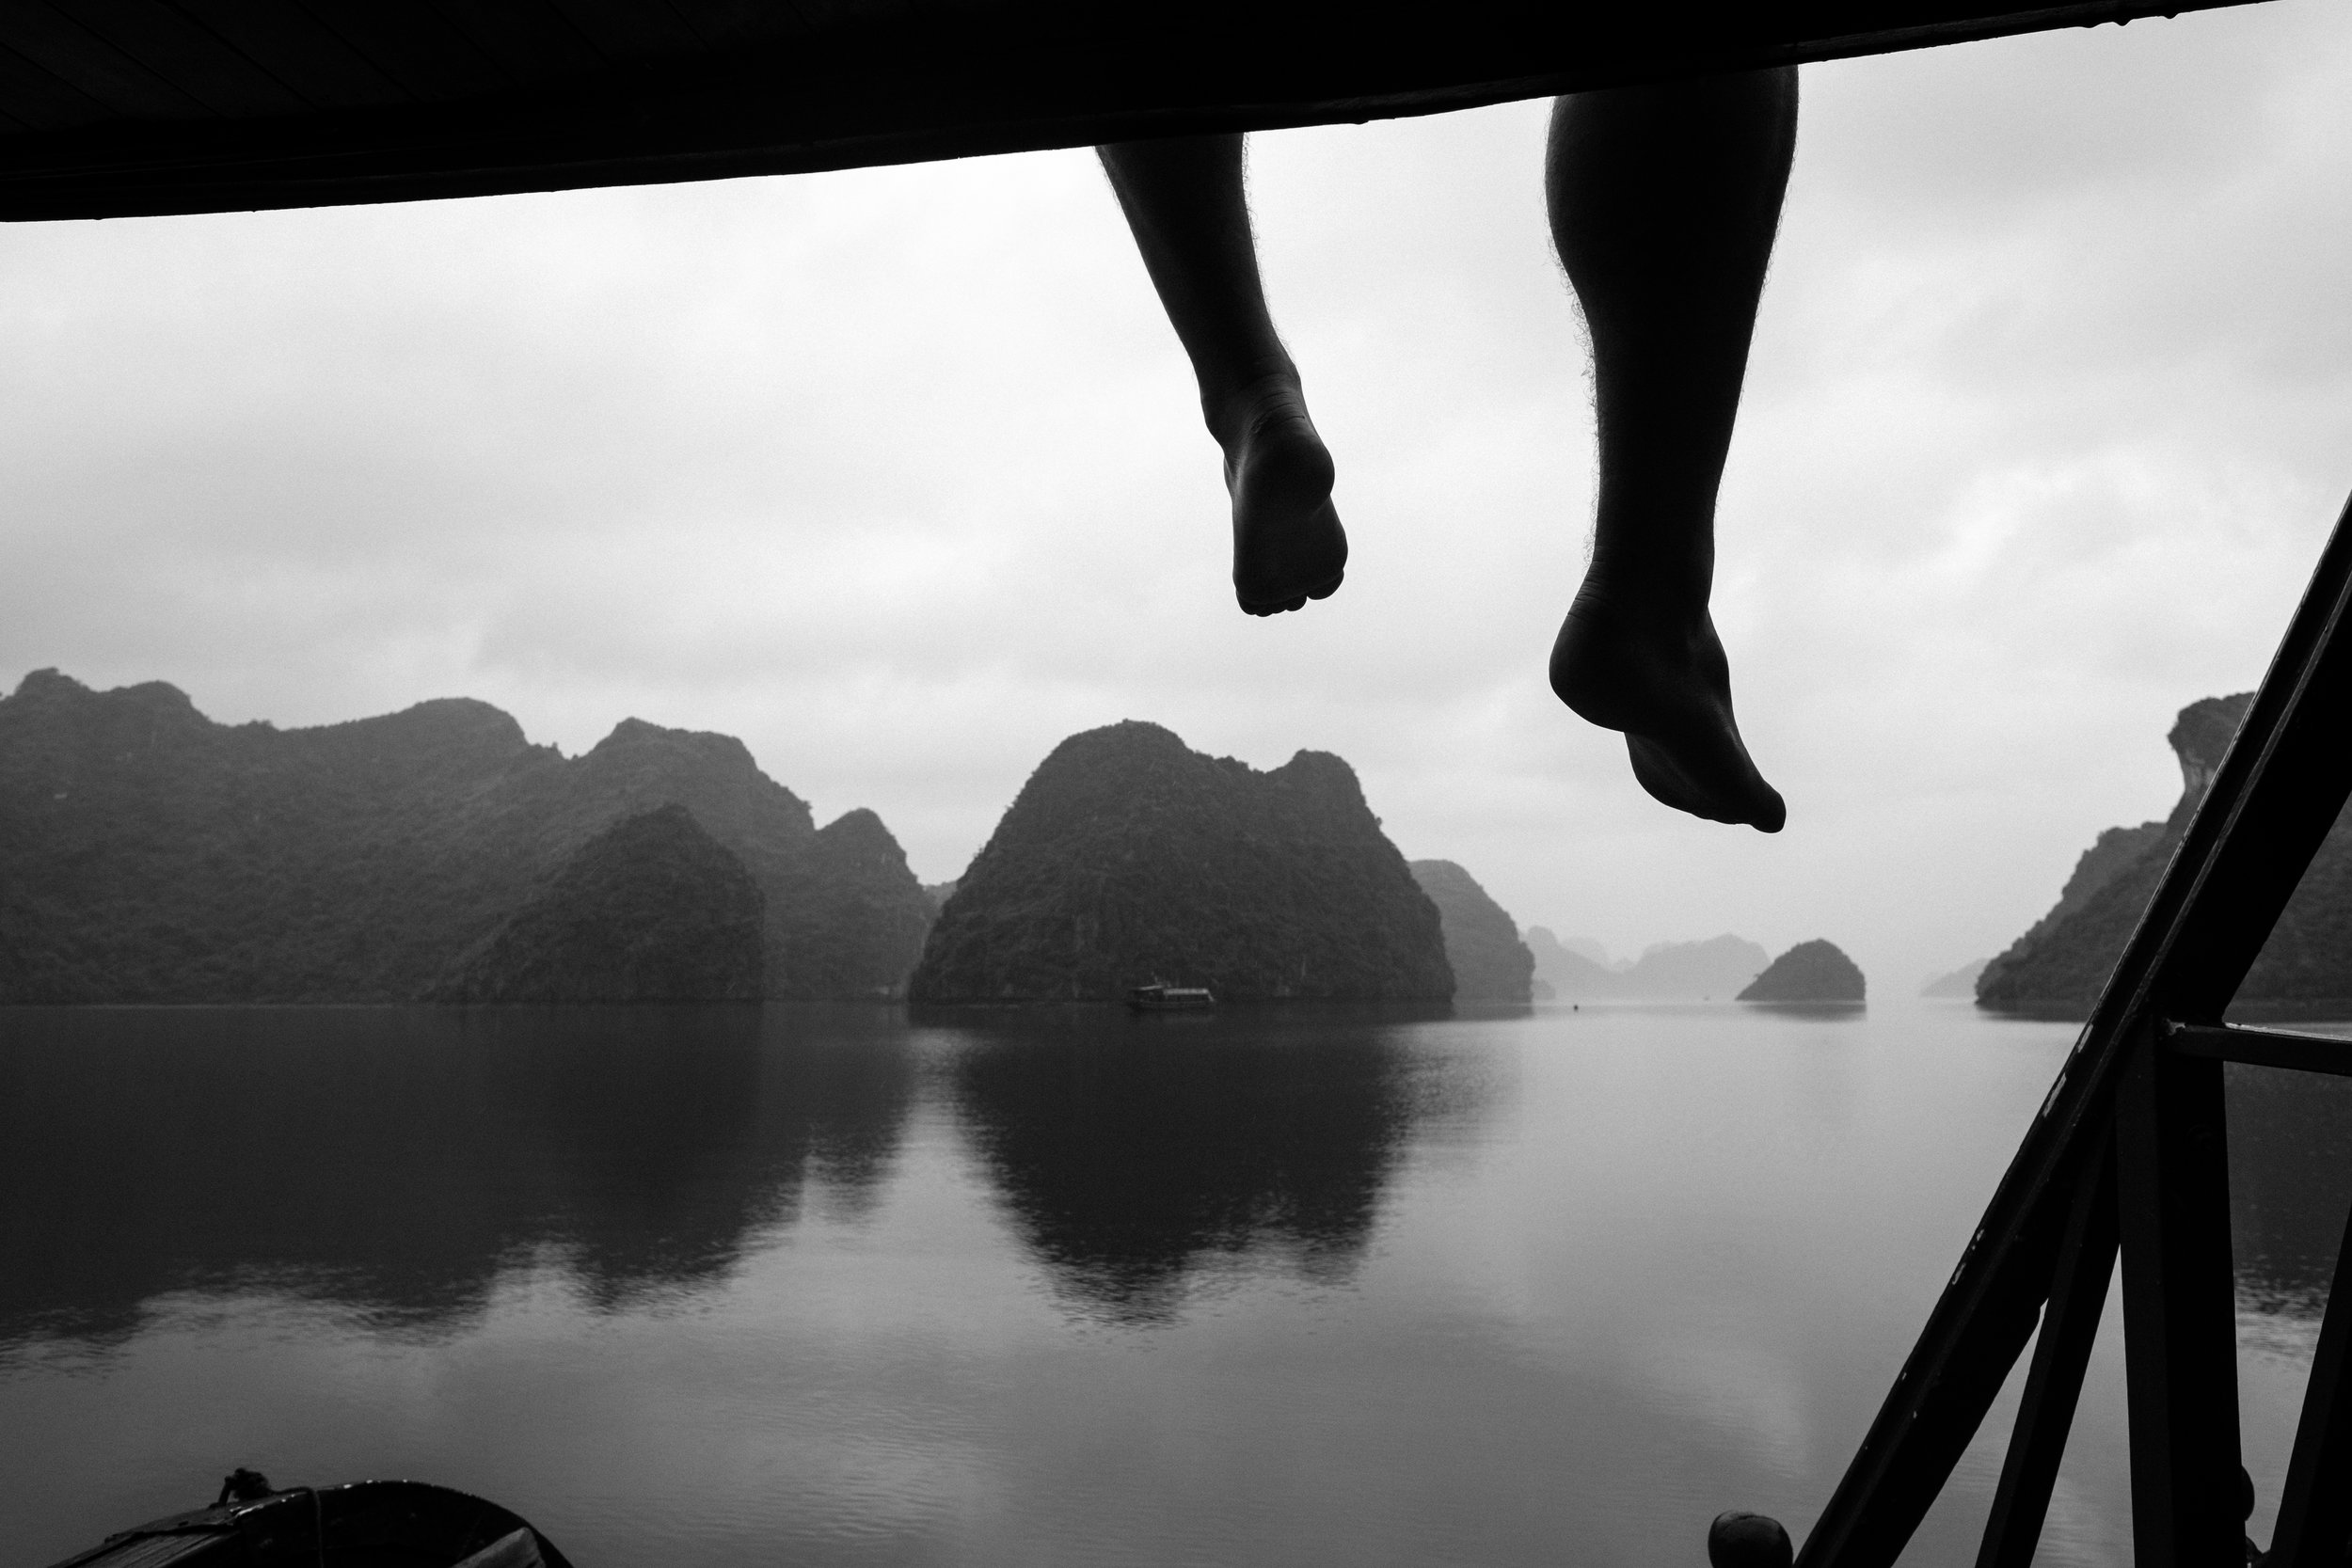 A travels rest with his feet hanging over the edge of a vessel during a cruise of Lan Ha Bay in Vietnam